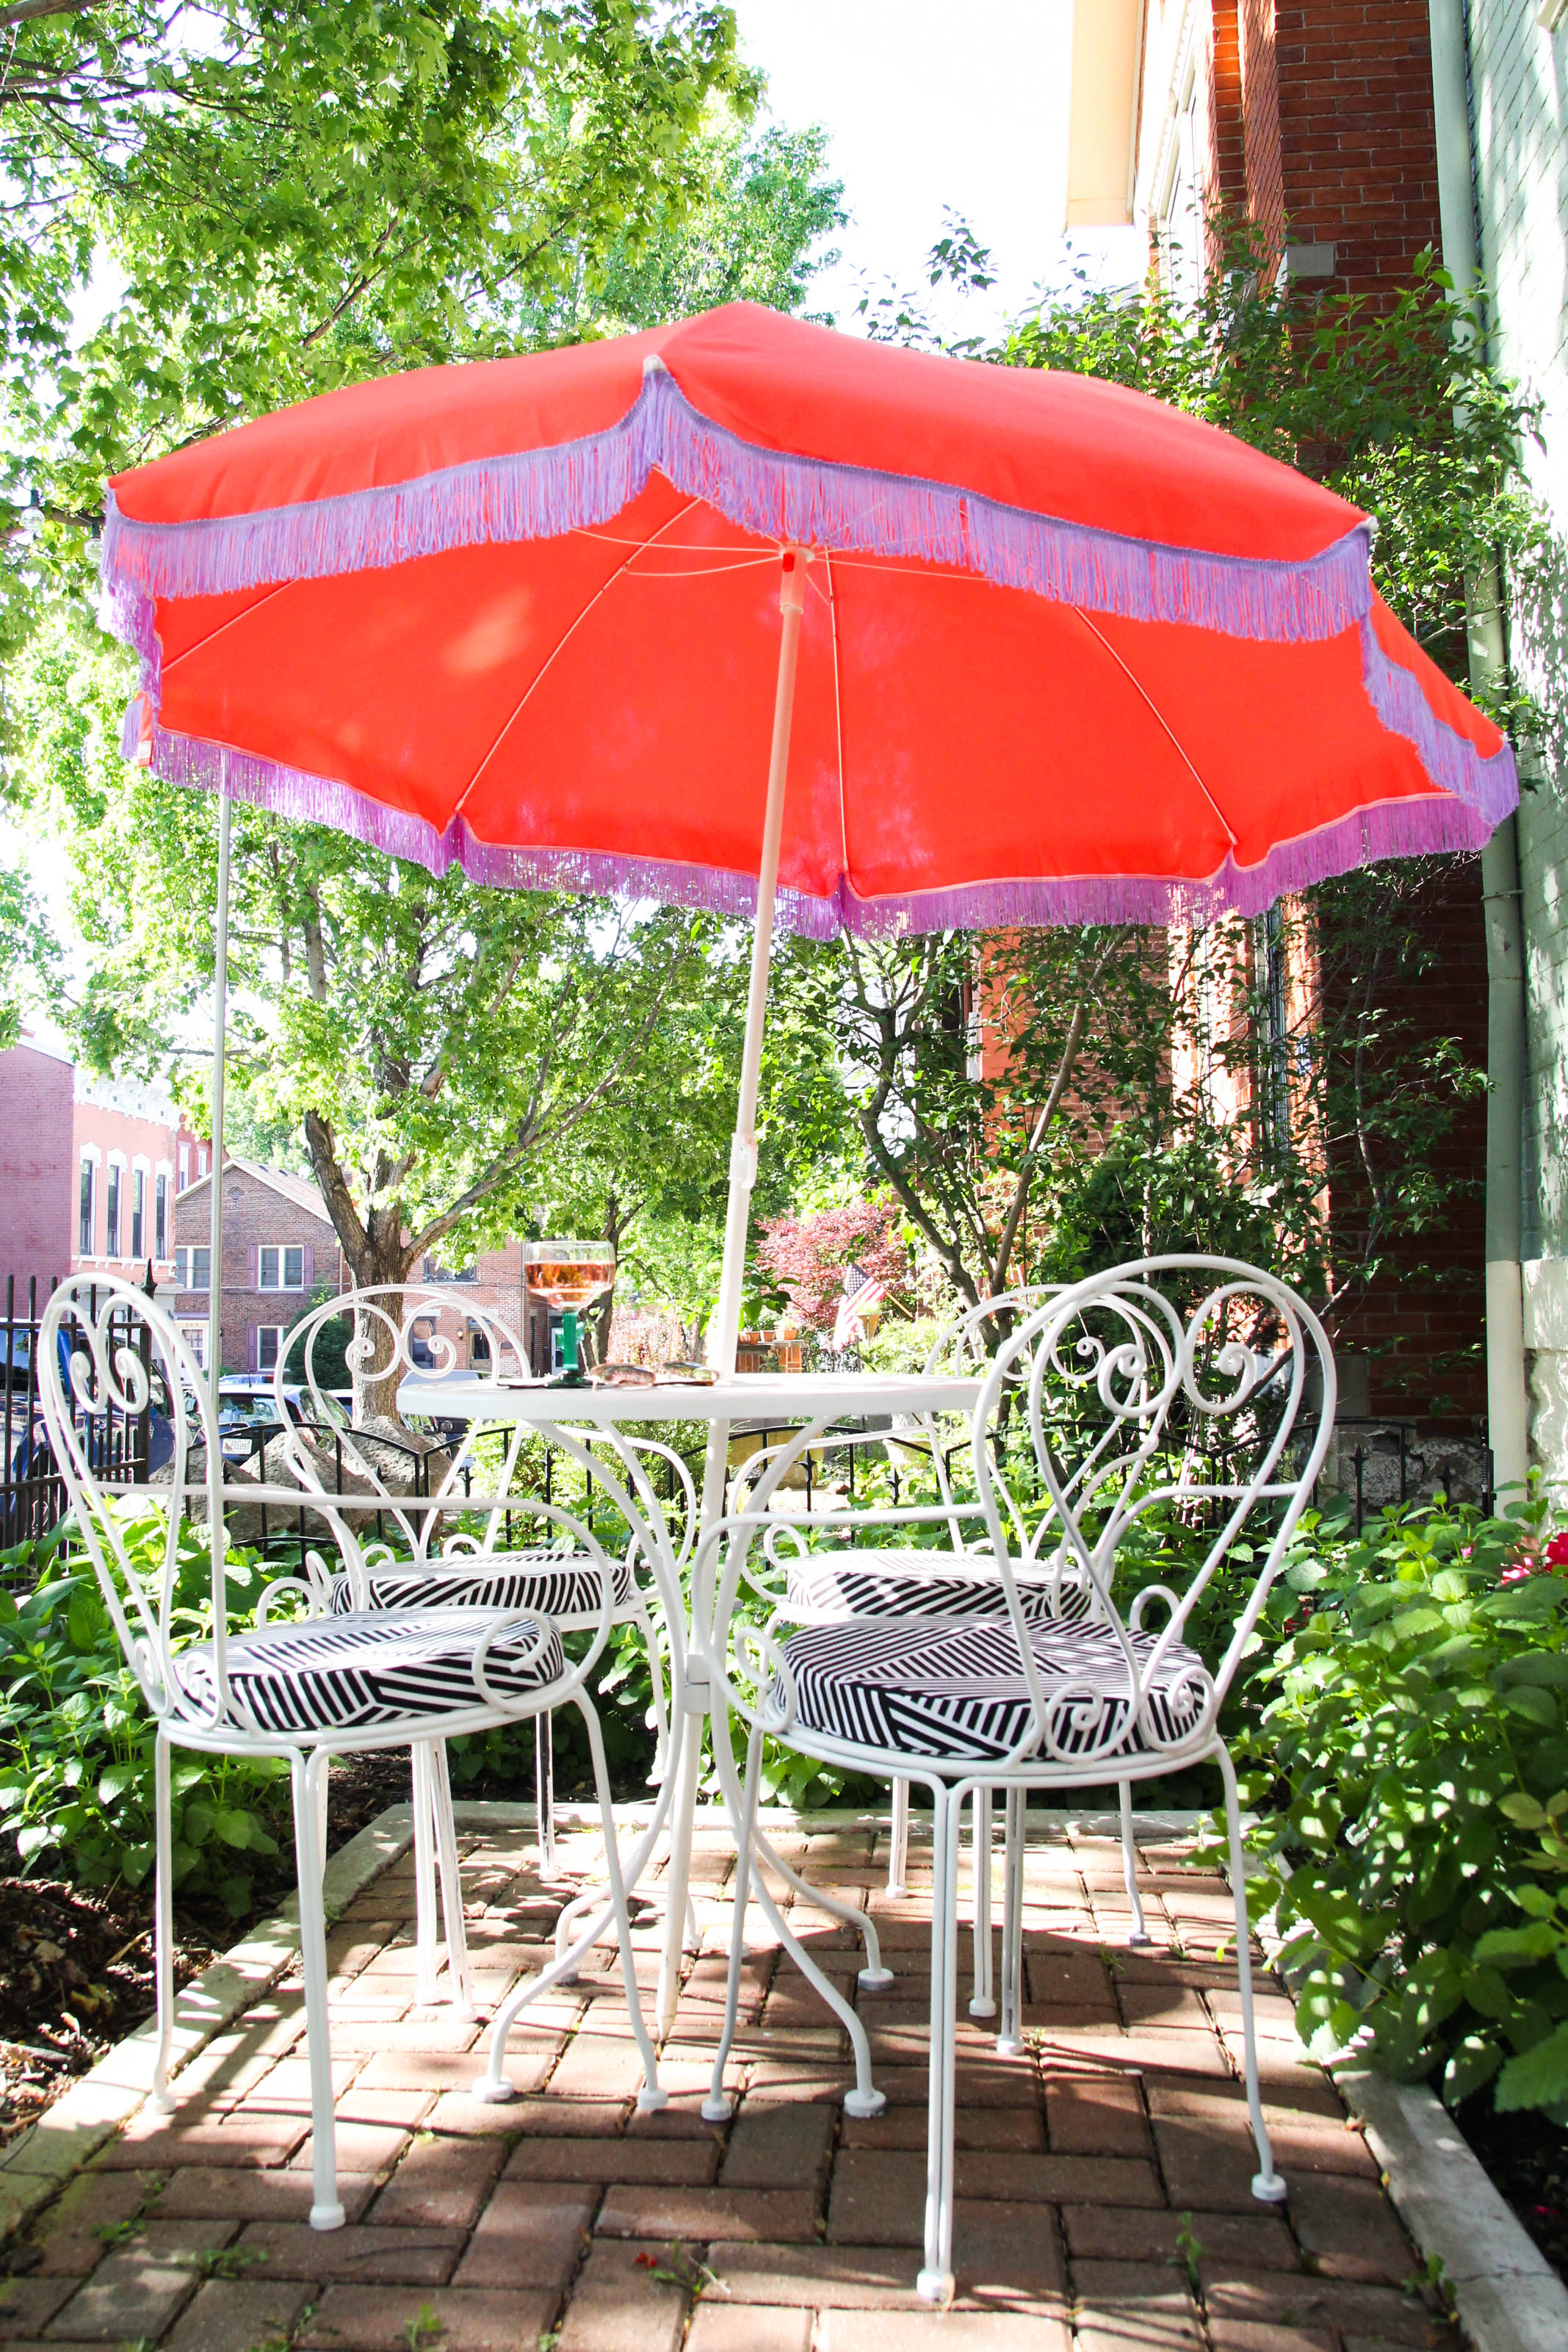 I Love Our Garden Patio Space, But The Sun Can Be Too Strong At Times For  This Pale Gal. When Looking For A Patio Umbrella, I Knew I Wanted It To Fit  ...